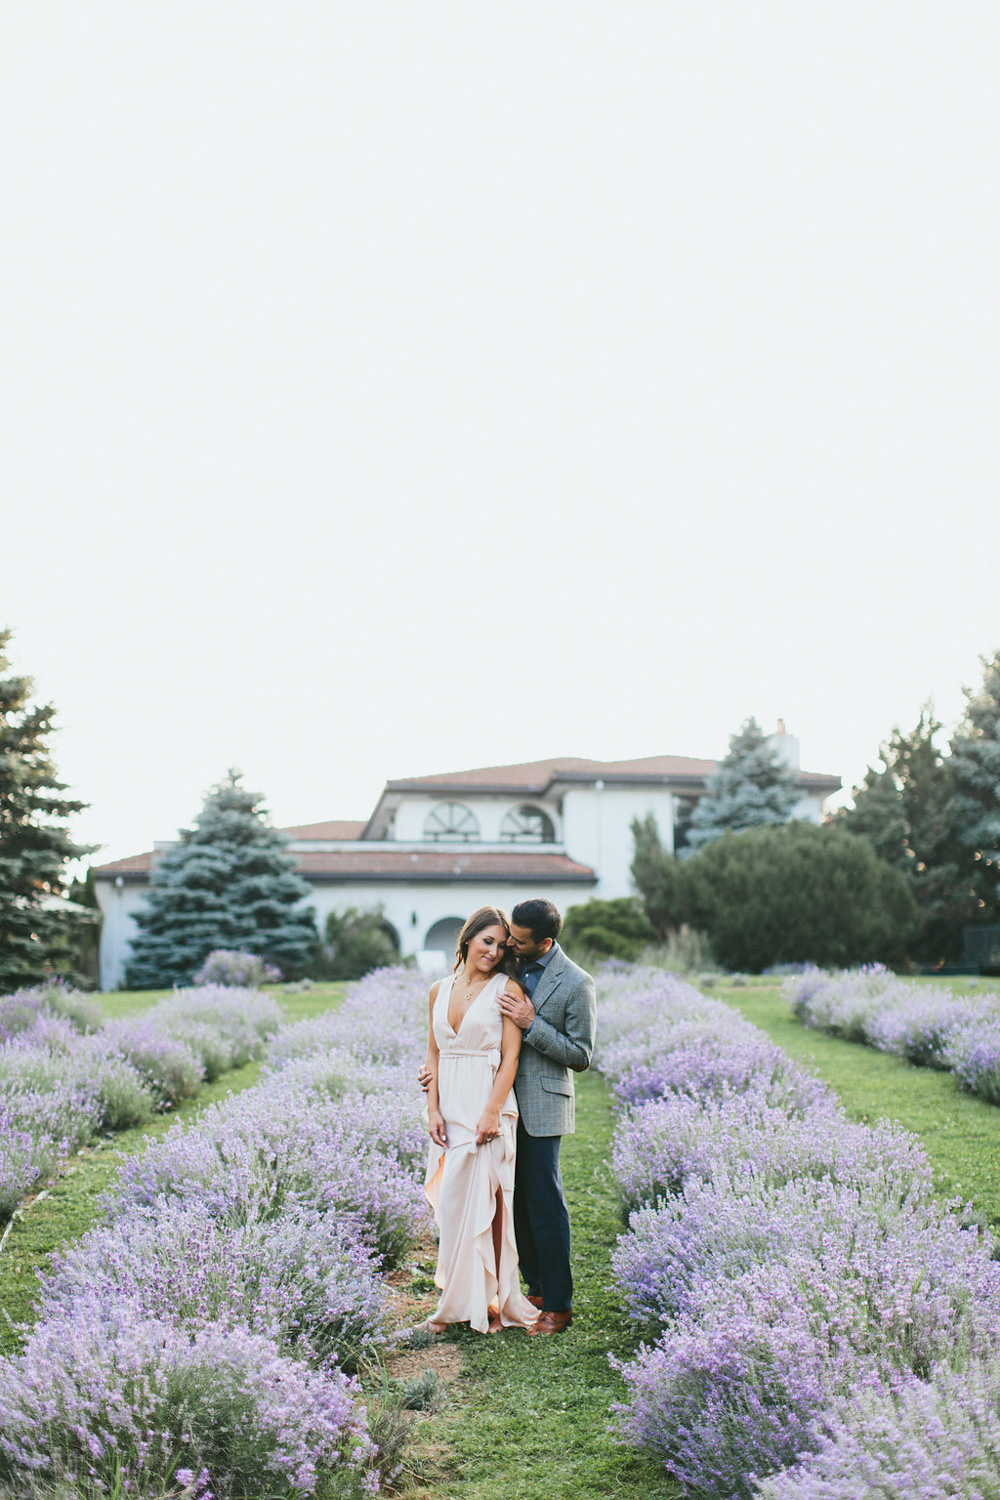 vineyard-bride-guide-engagement-session-planning-series-swish-list-vendor-niagara-toronto003.jpg